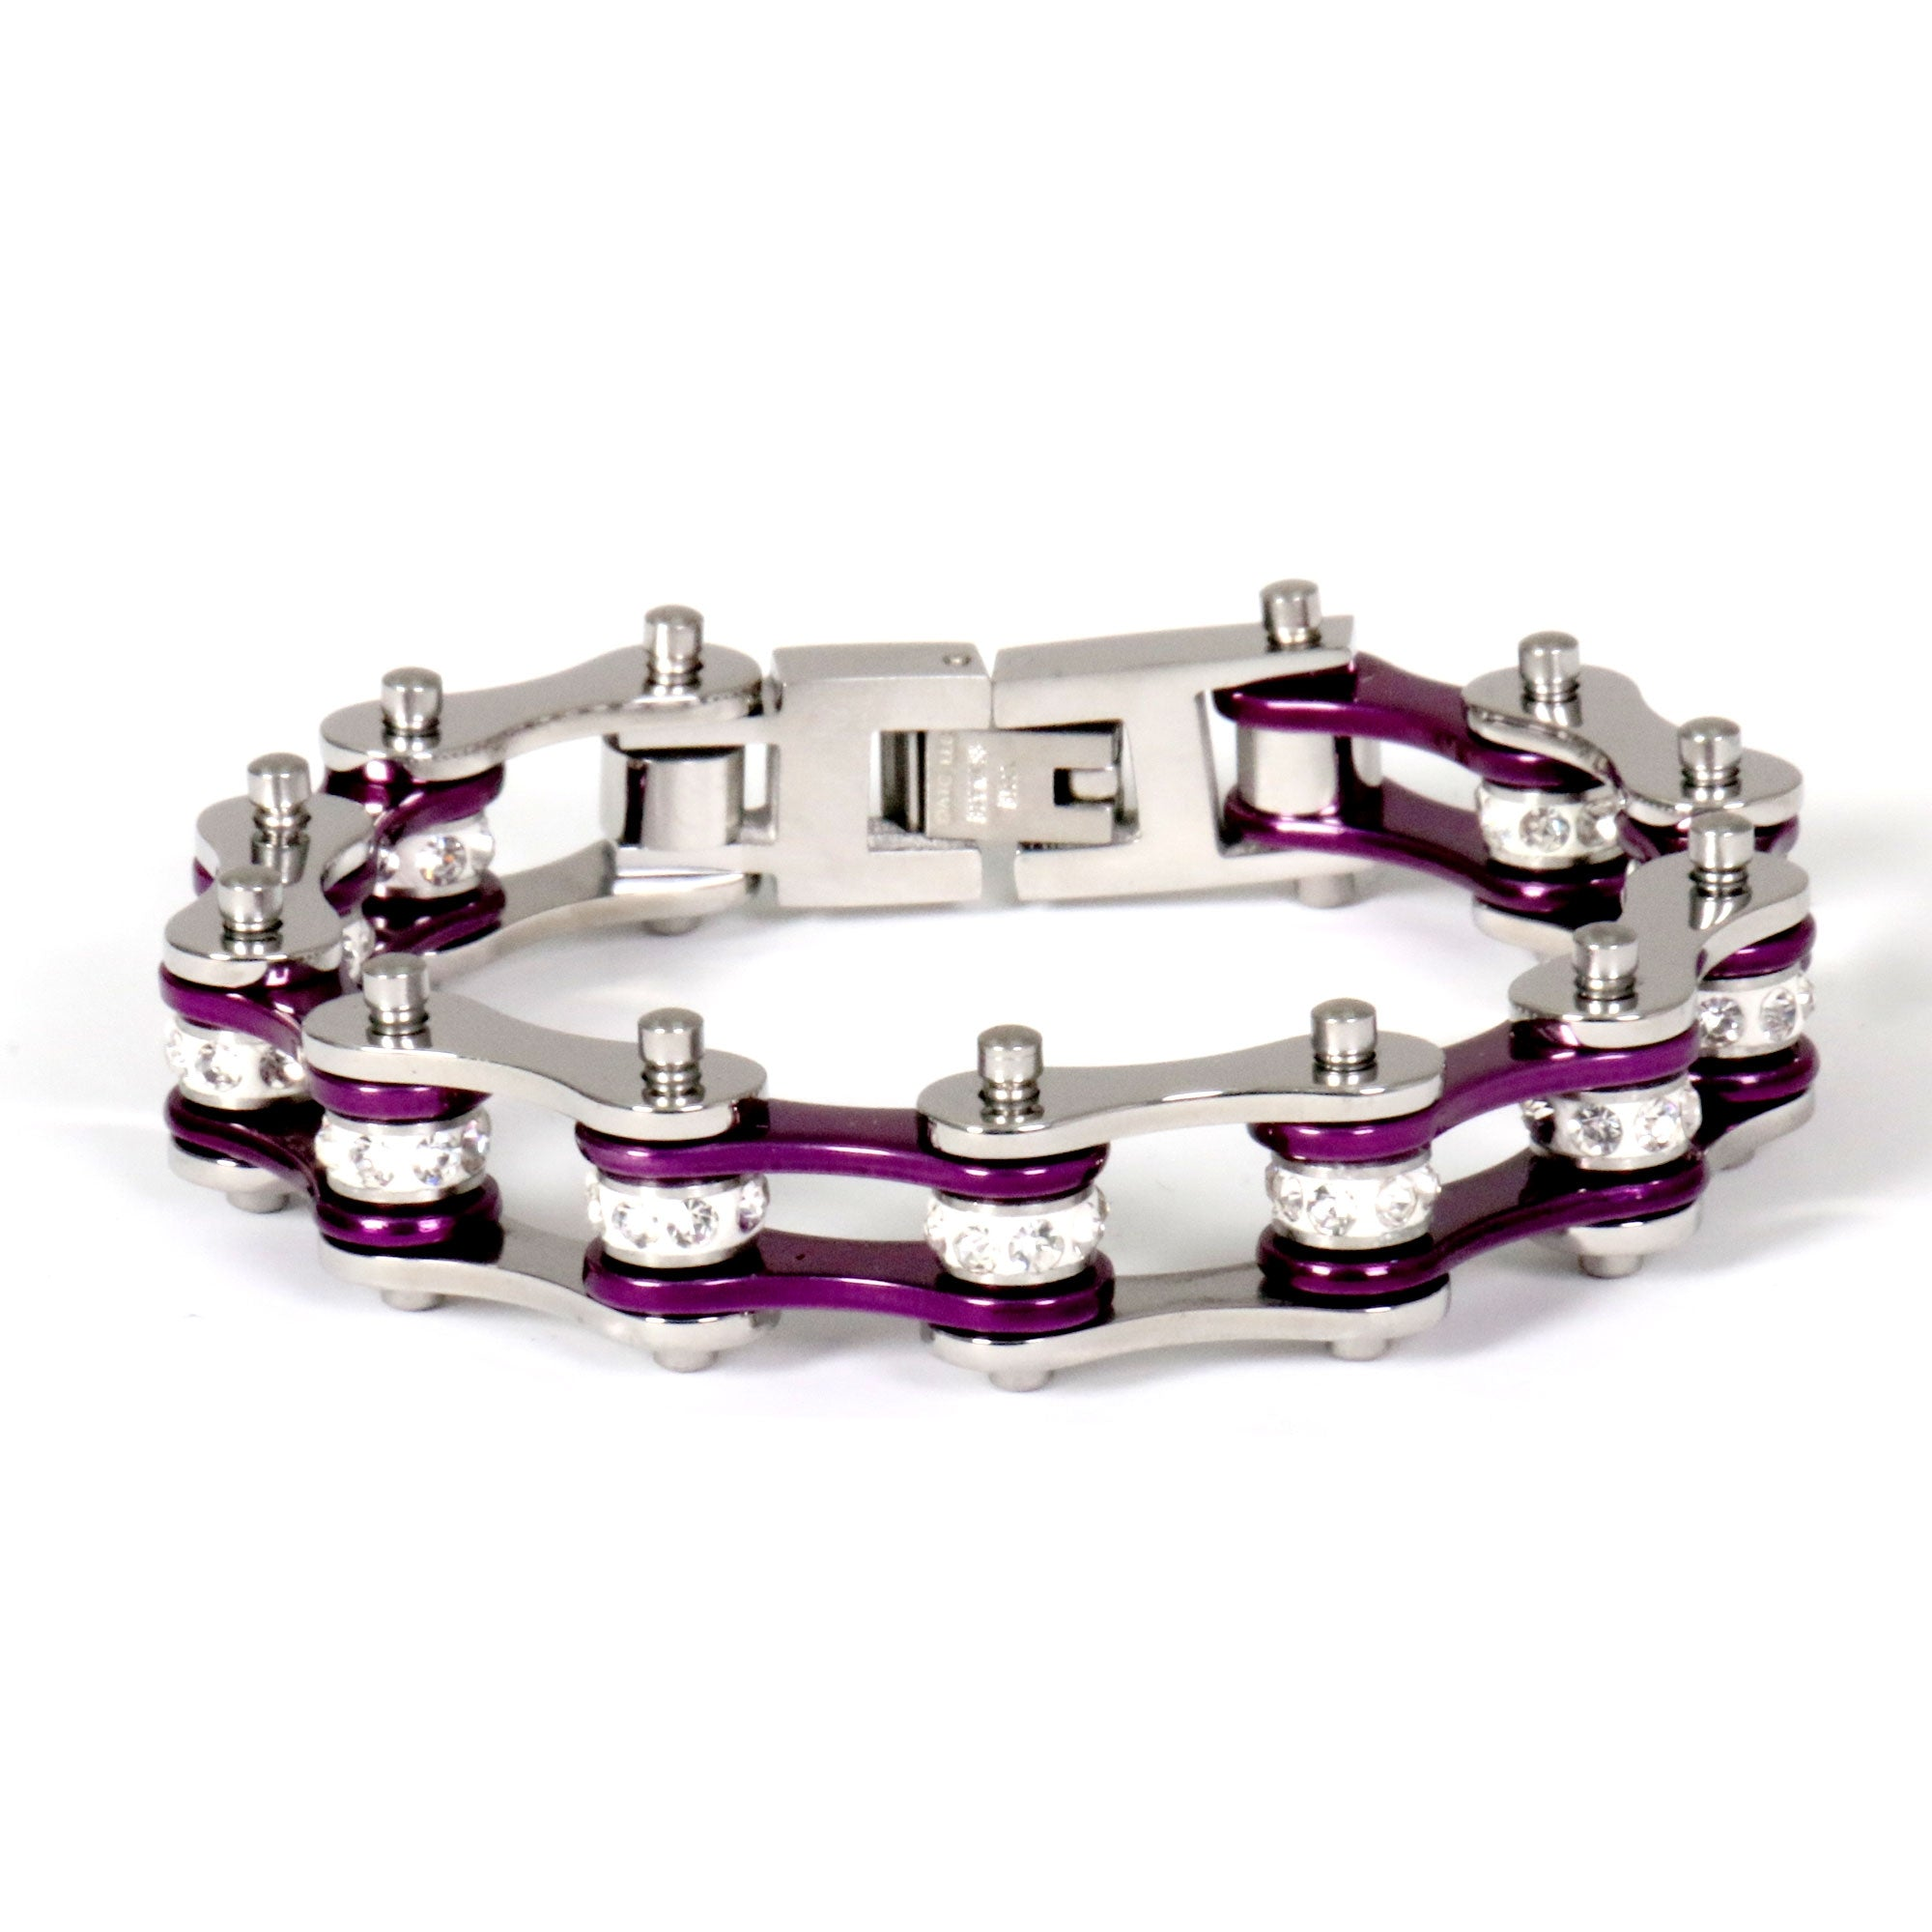 Hot Leathers Purple Motorcycle Chain Bracelets